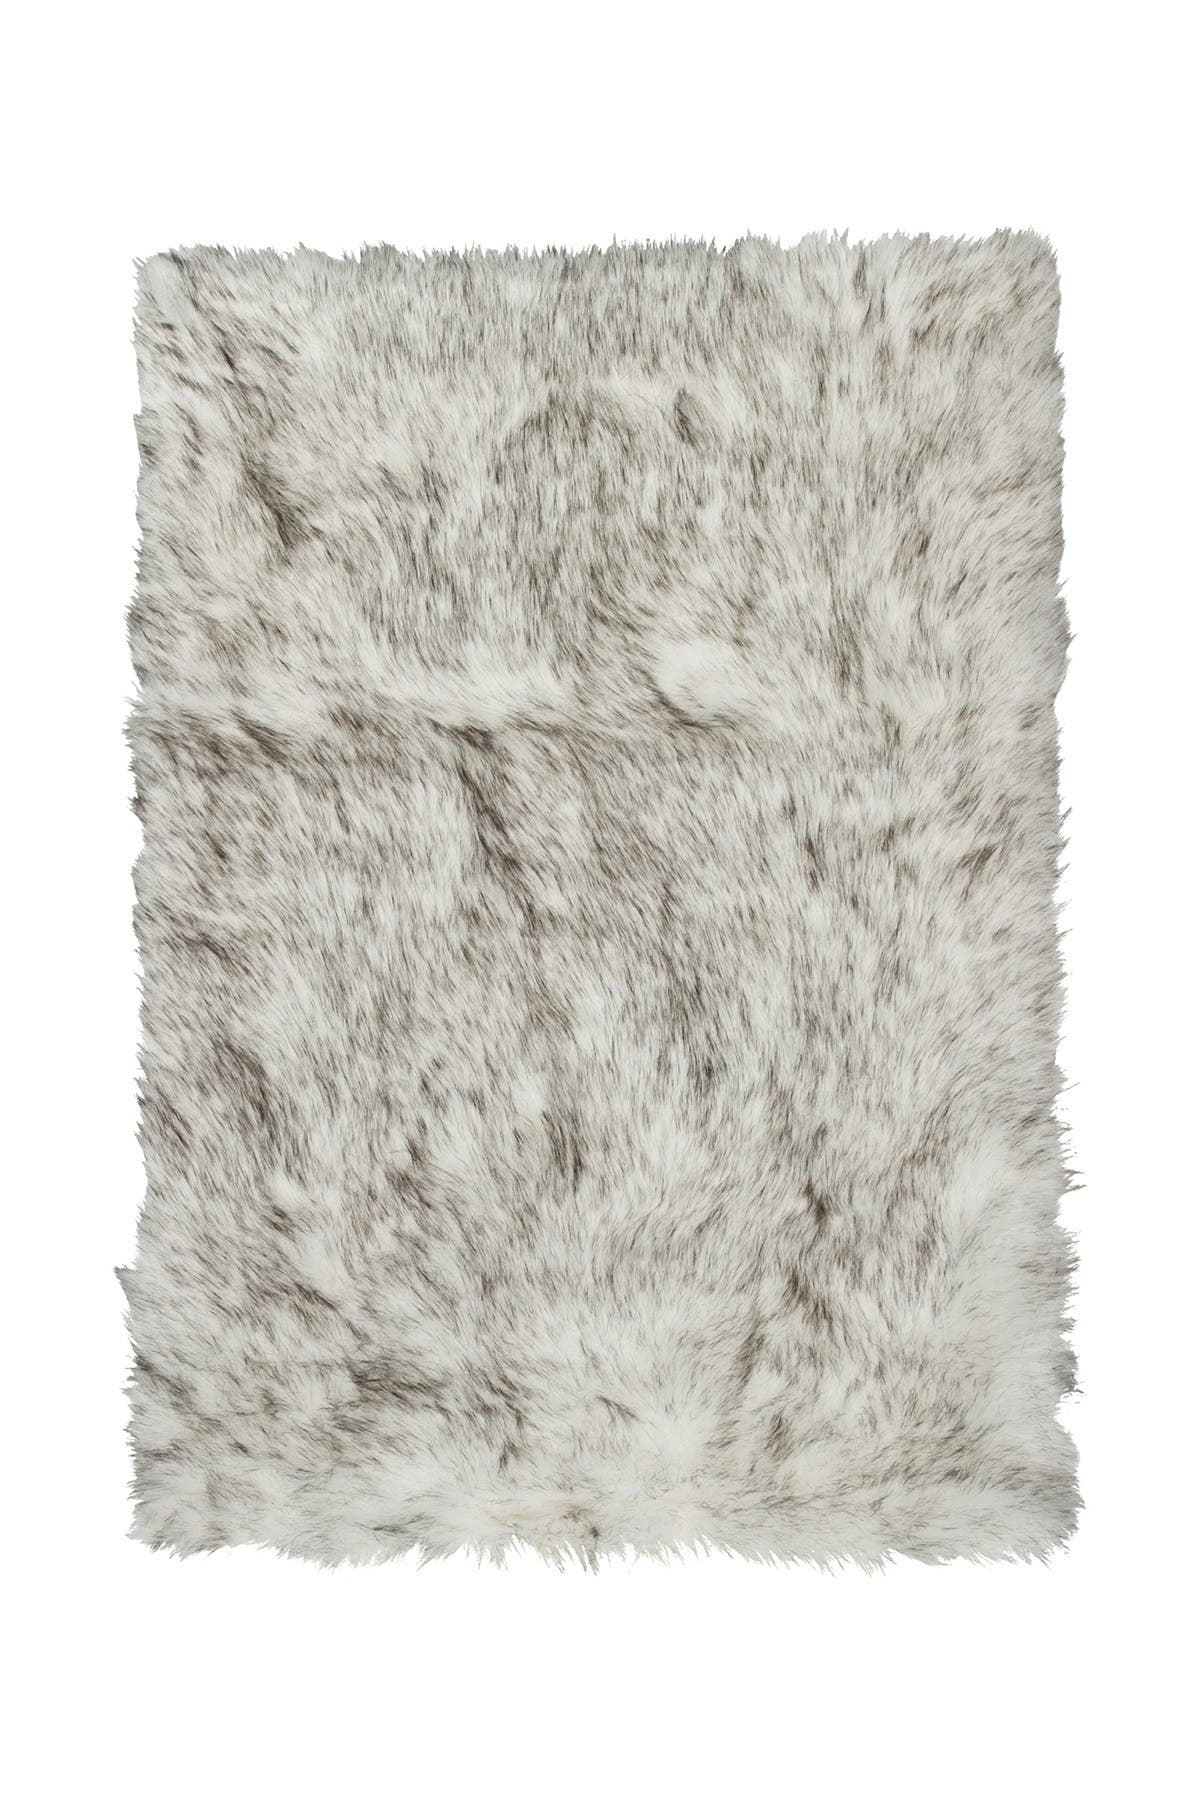 Image of LUXE Hudson Faux Fur Rug/Throw - 3ft. x 5ft - Gradient Gray